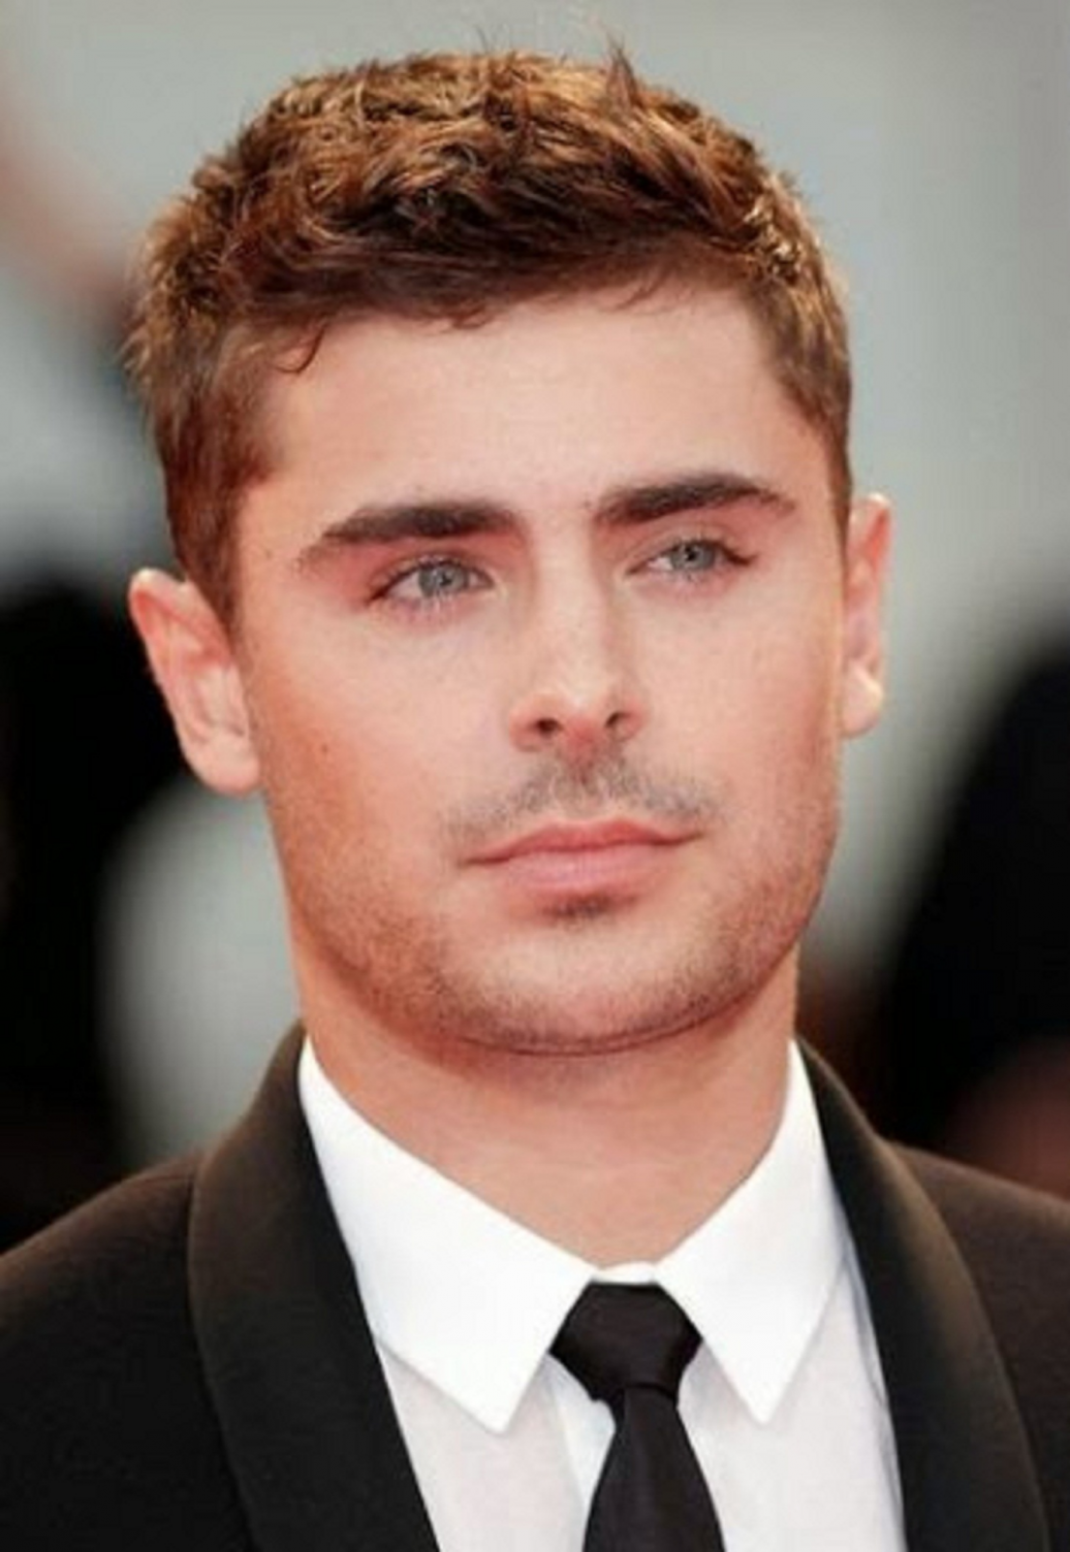 Messy Hairstyles: 10 Best Men's Messy Haircut & Styling It AtoZ Short Messy Hair Men